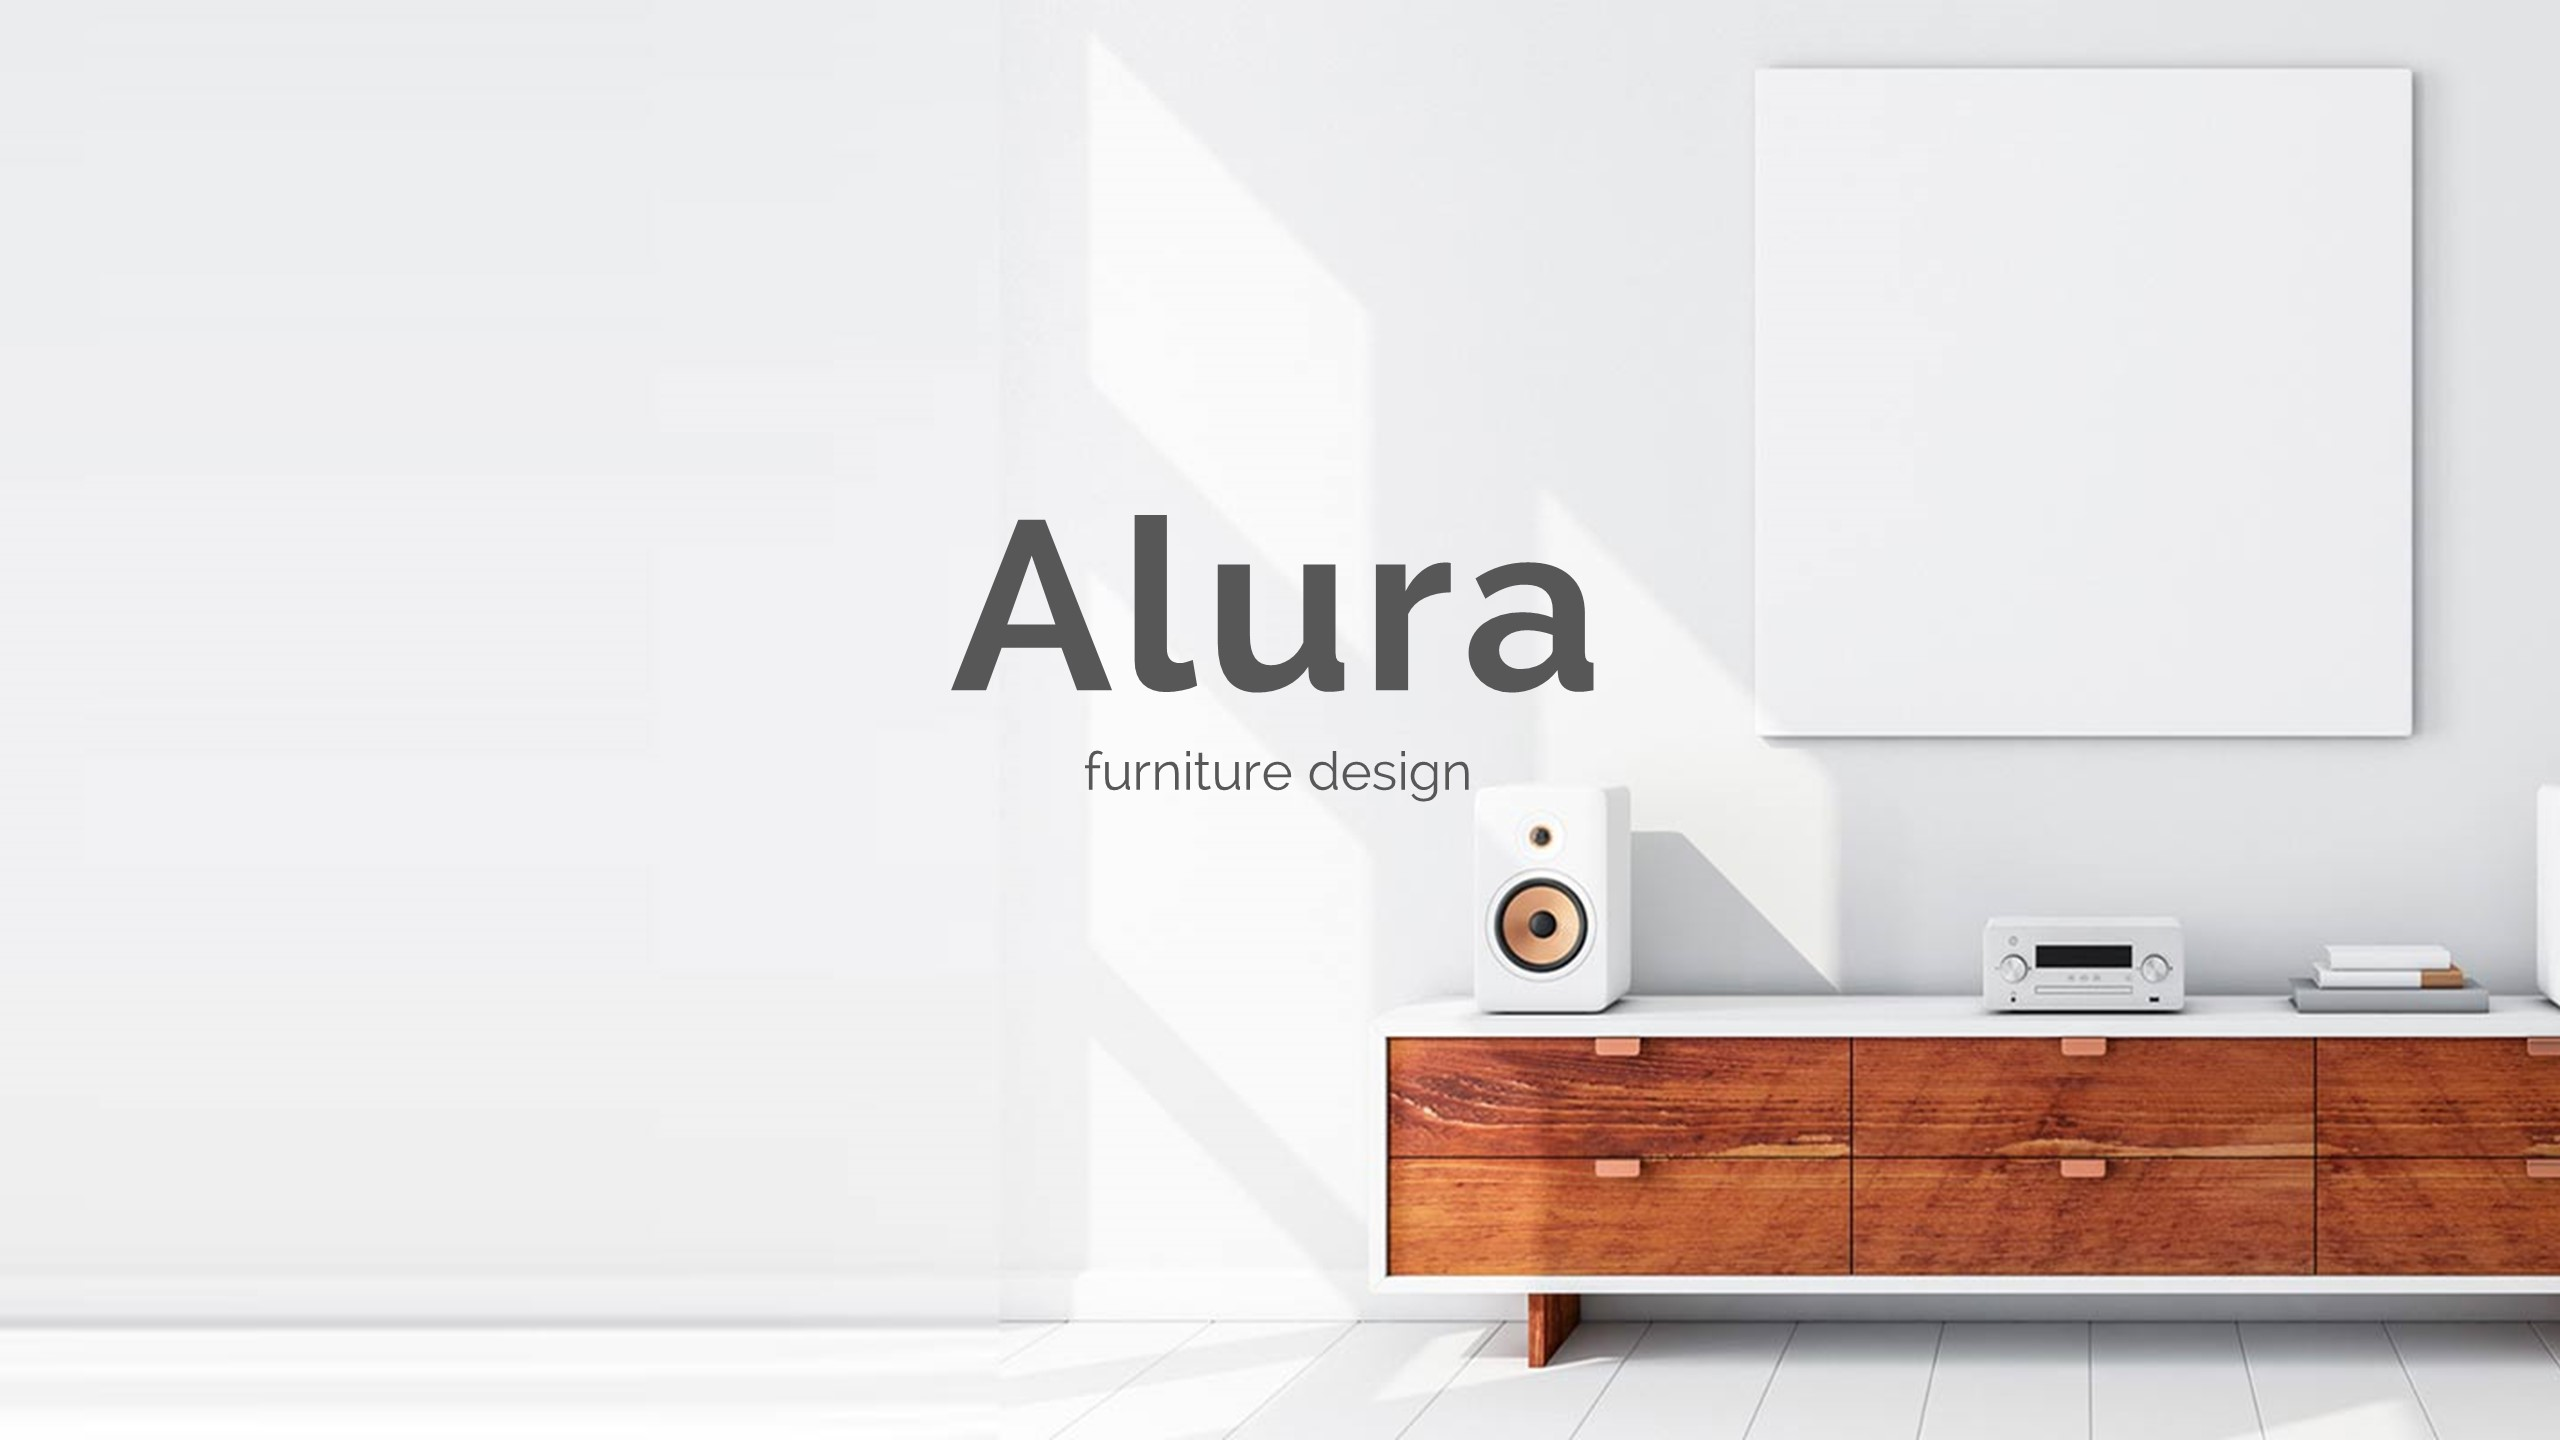 minimal furniture design. Alura Minimal And Furniture Design Powerpoint Template - Creative PowerPoint Templates · Preview Image Set/Slide1.